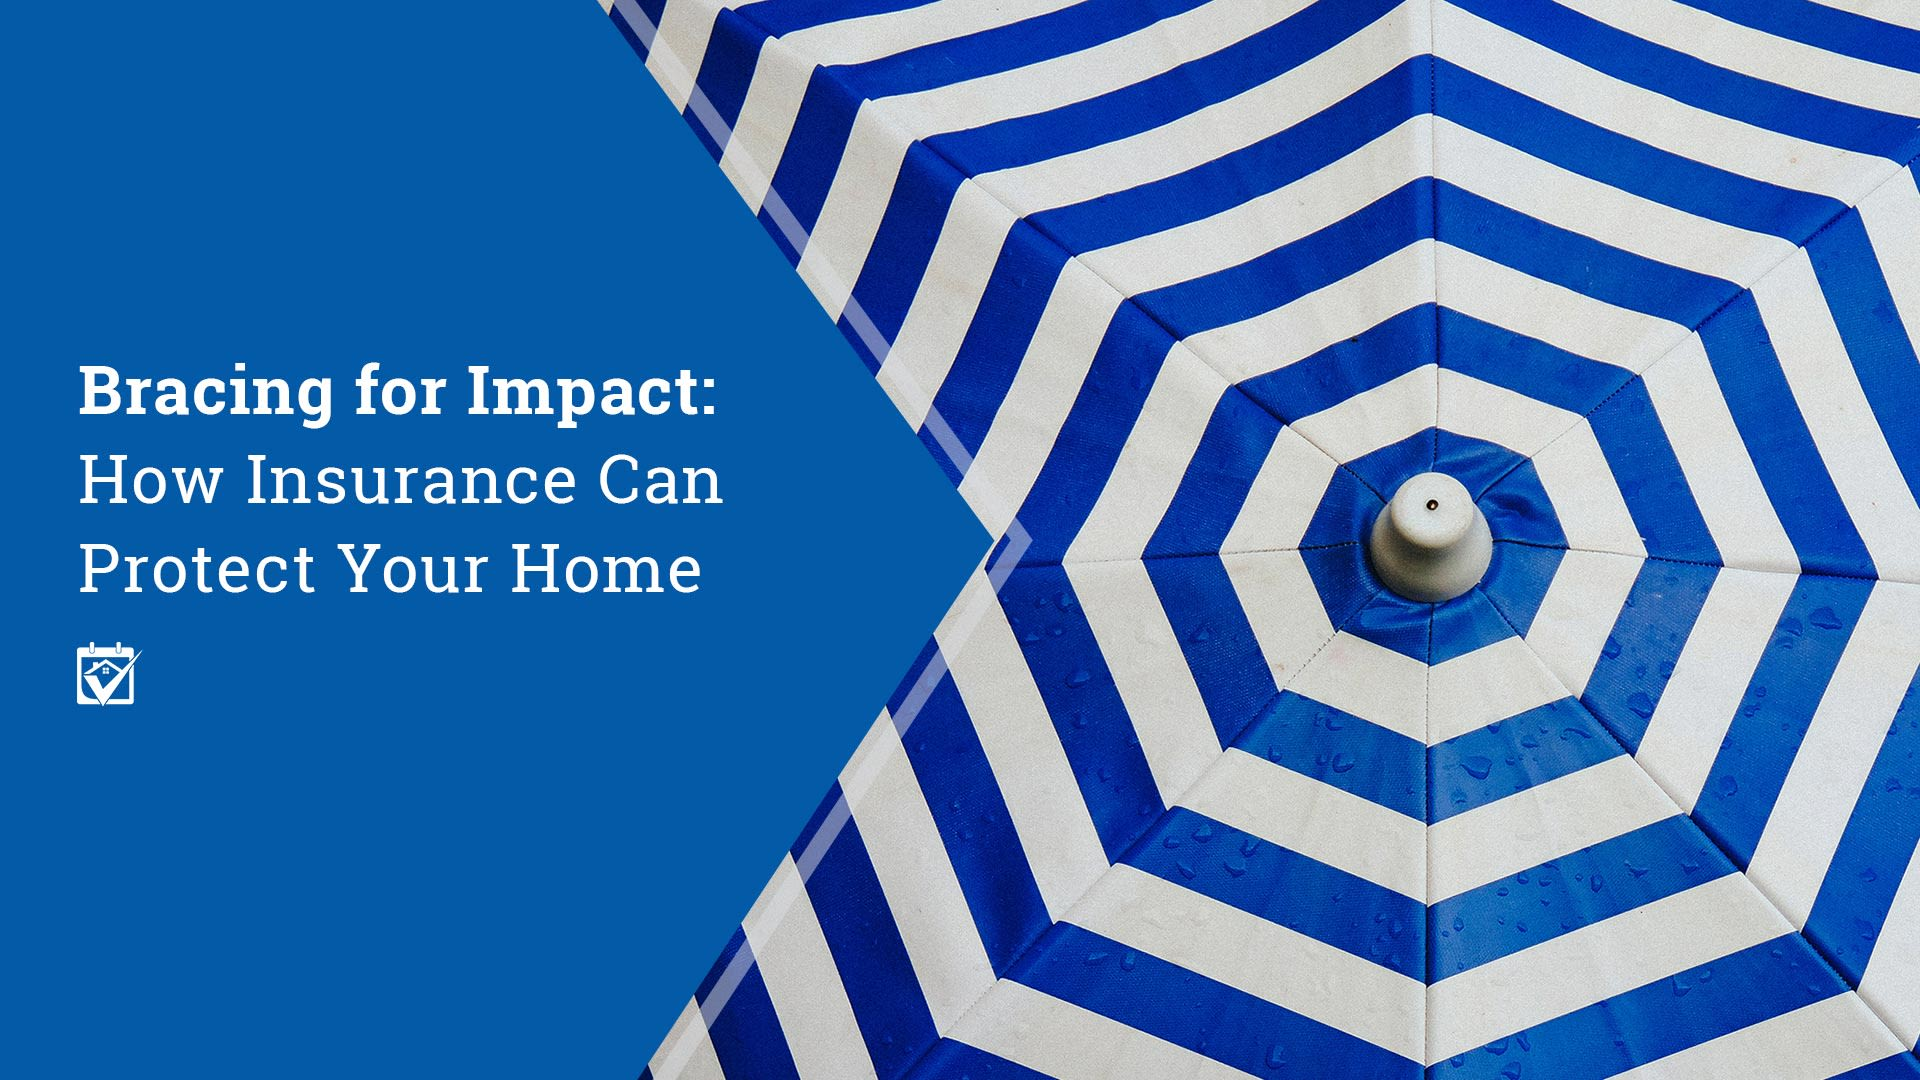 Bracing for Impact-How Insurance Can Protect Your Home